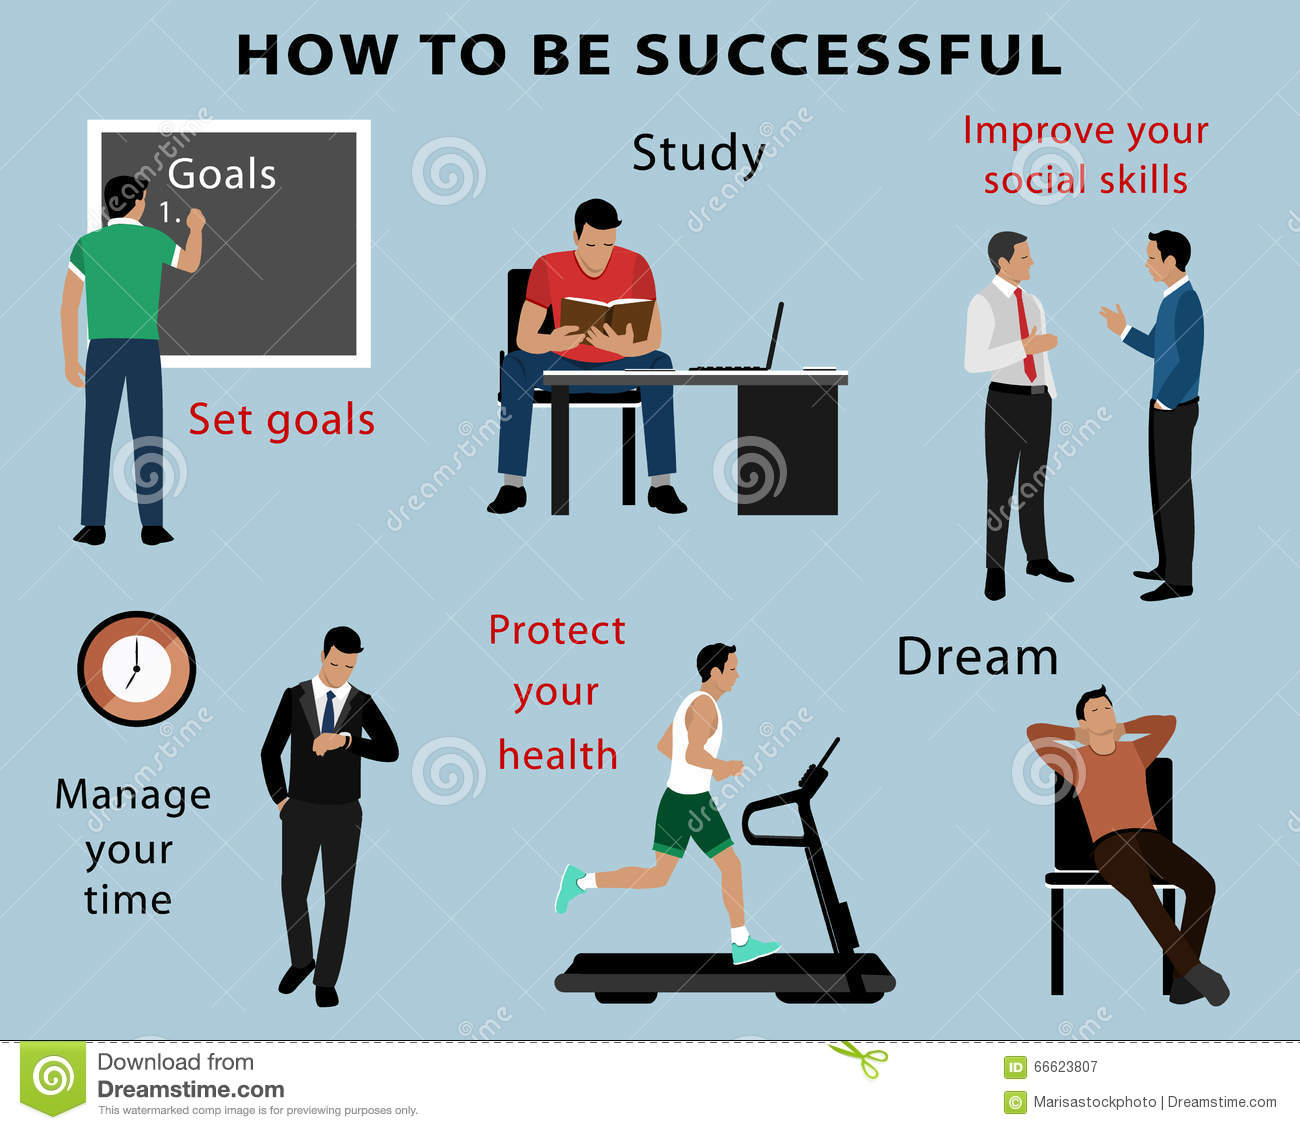 How successful can the management of